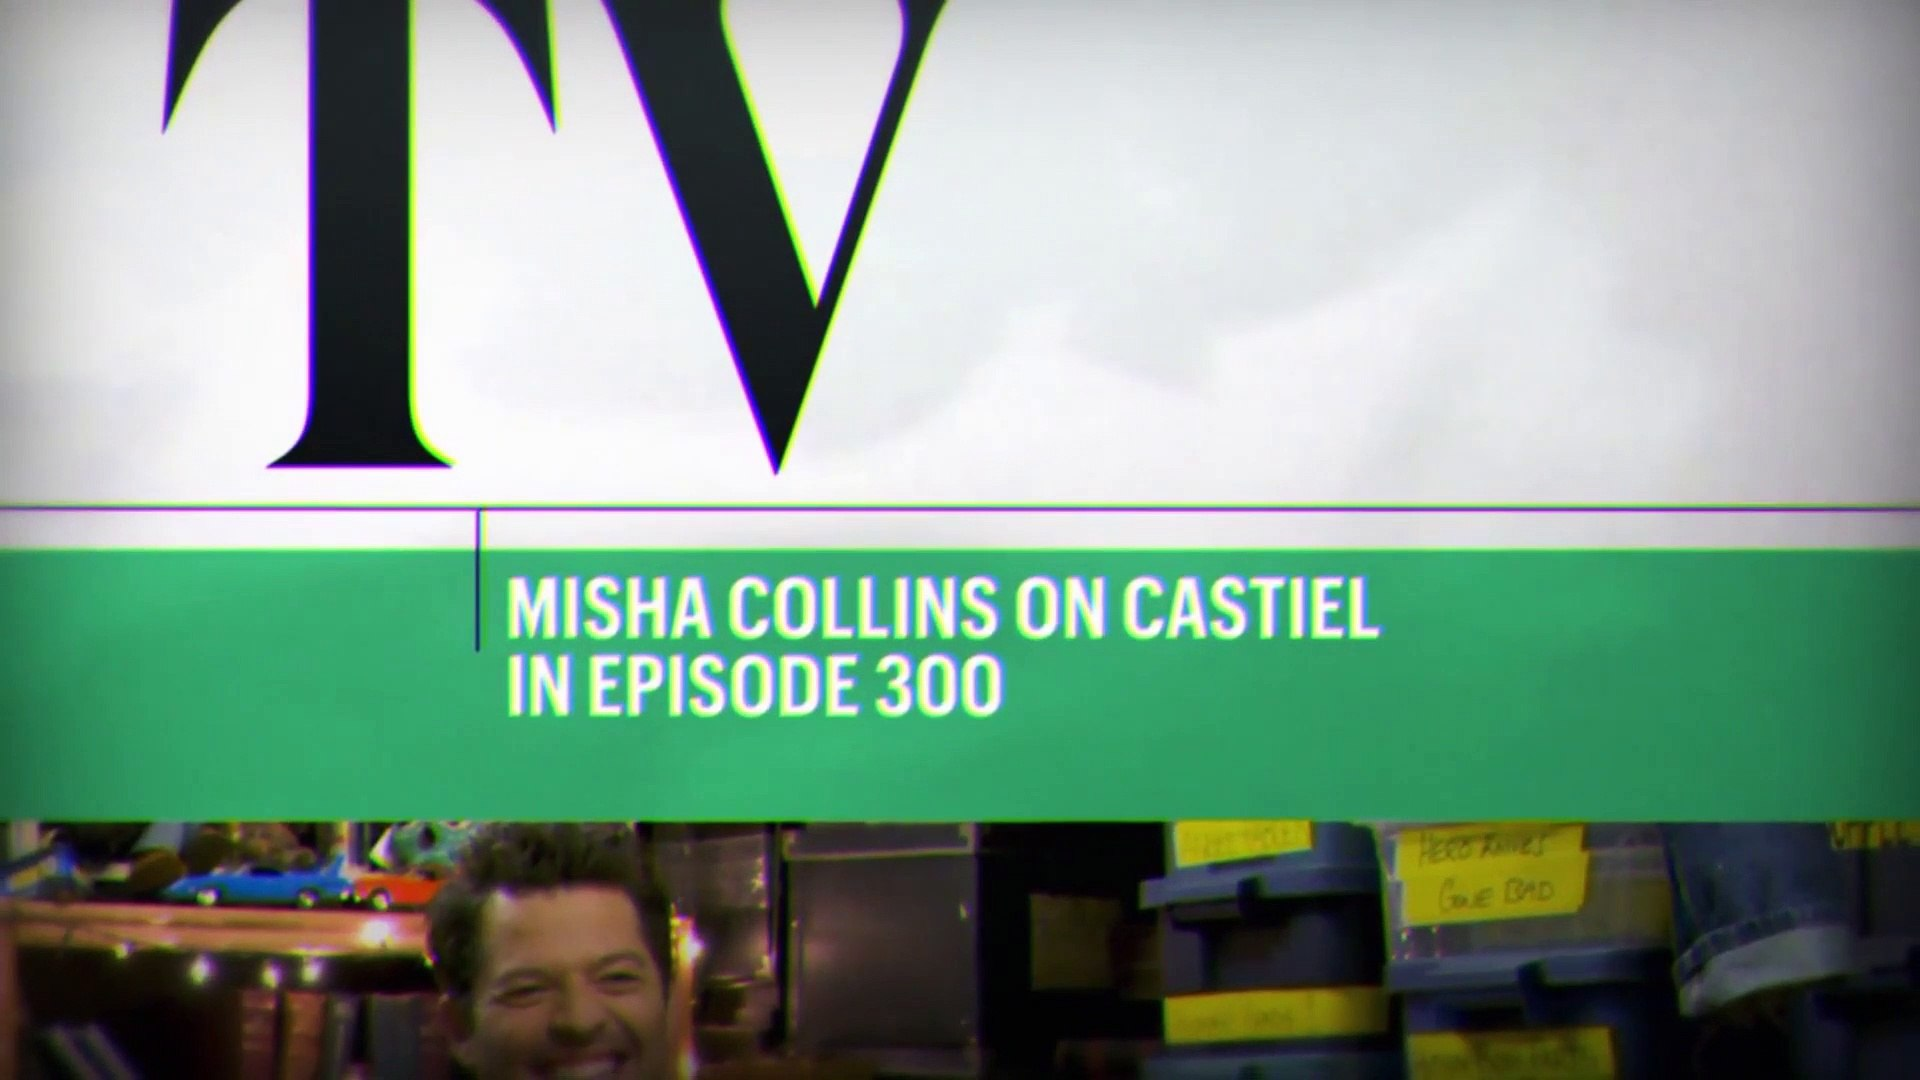 Misha Collins On Castiel's Wardrobe Change In 'Supernatural' 300th Episode | Entertai